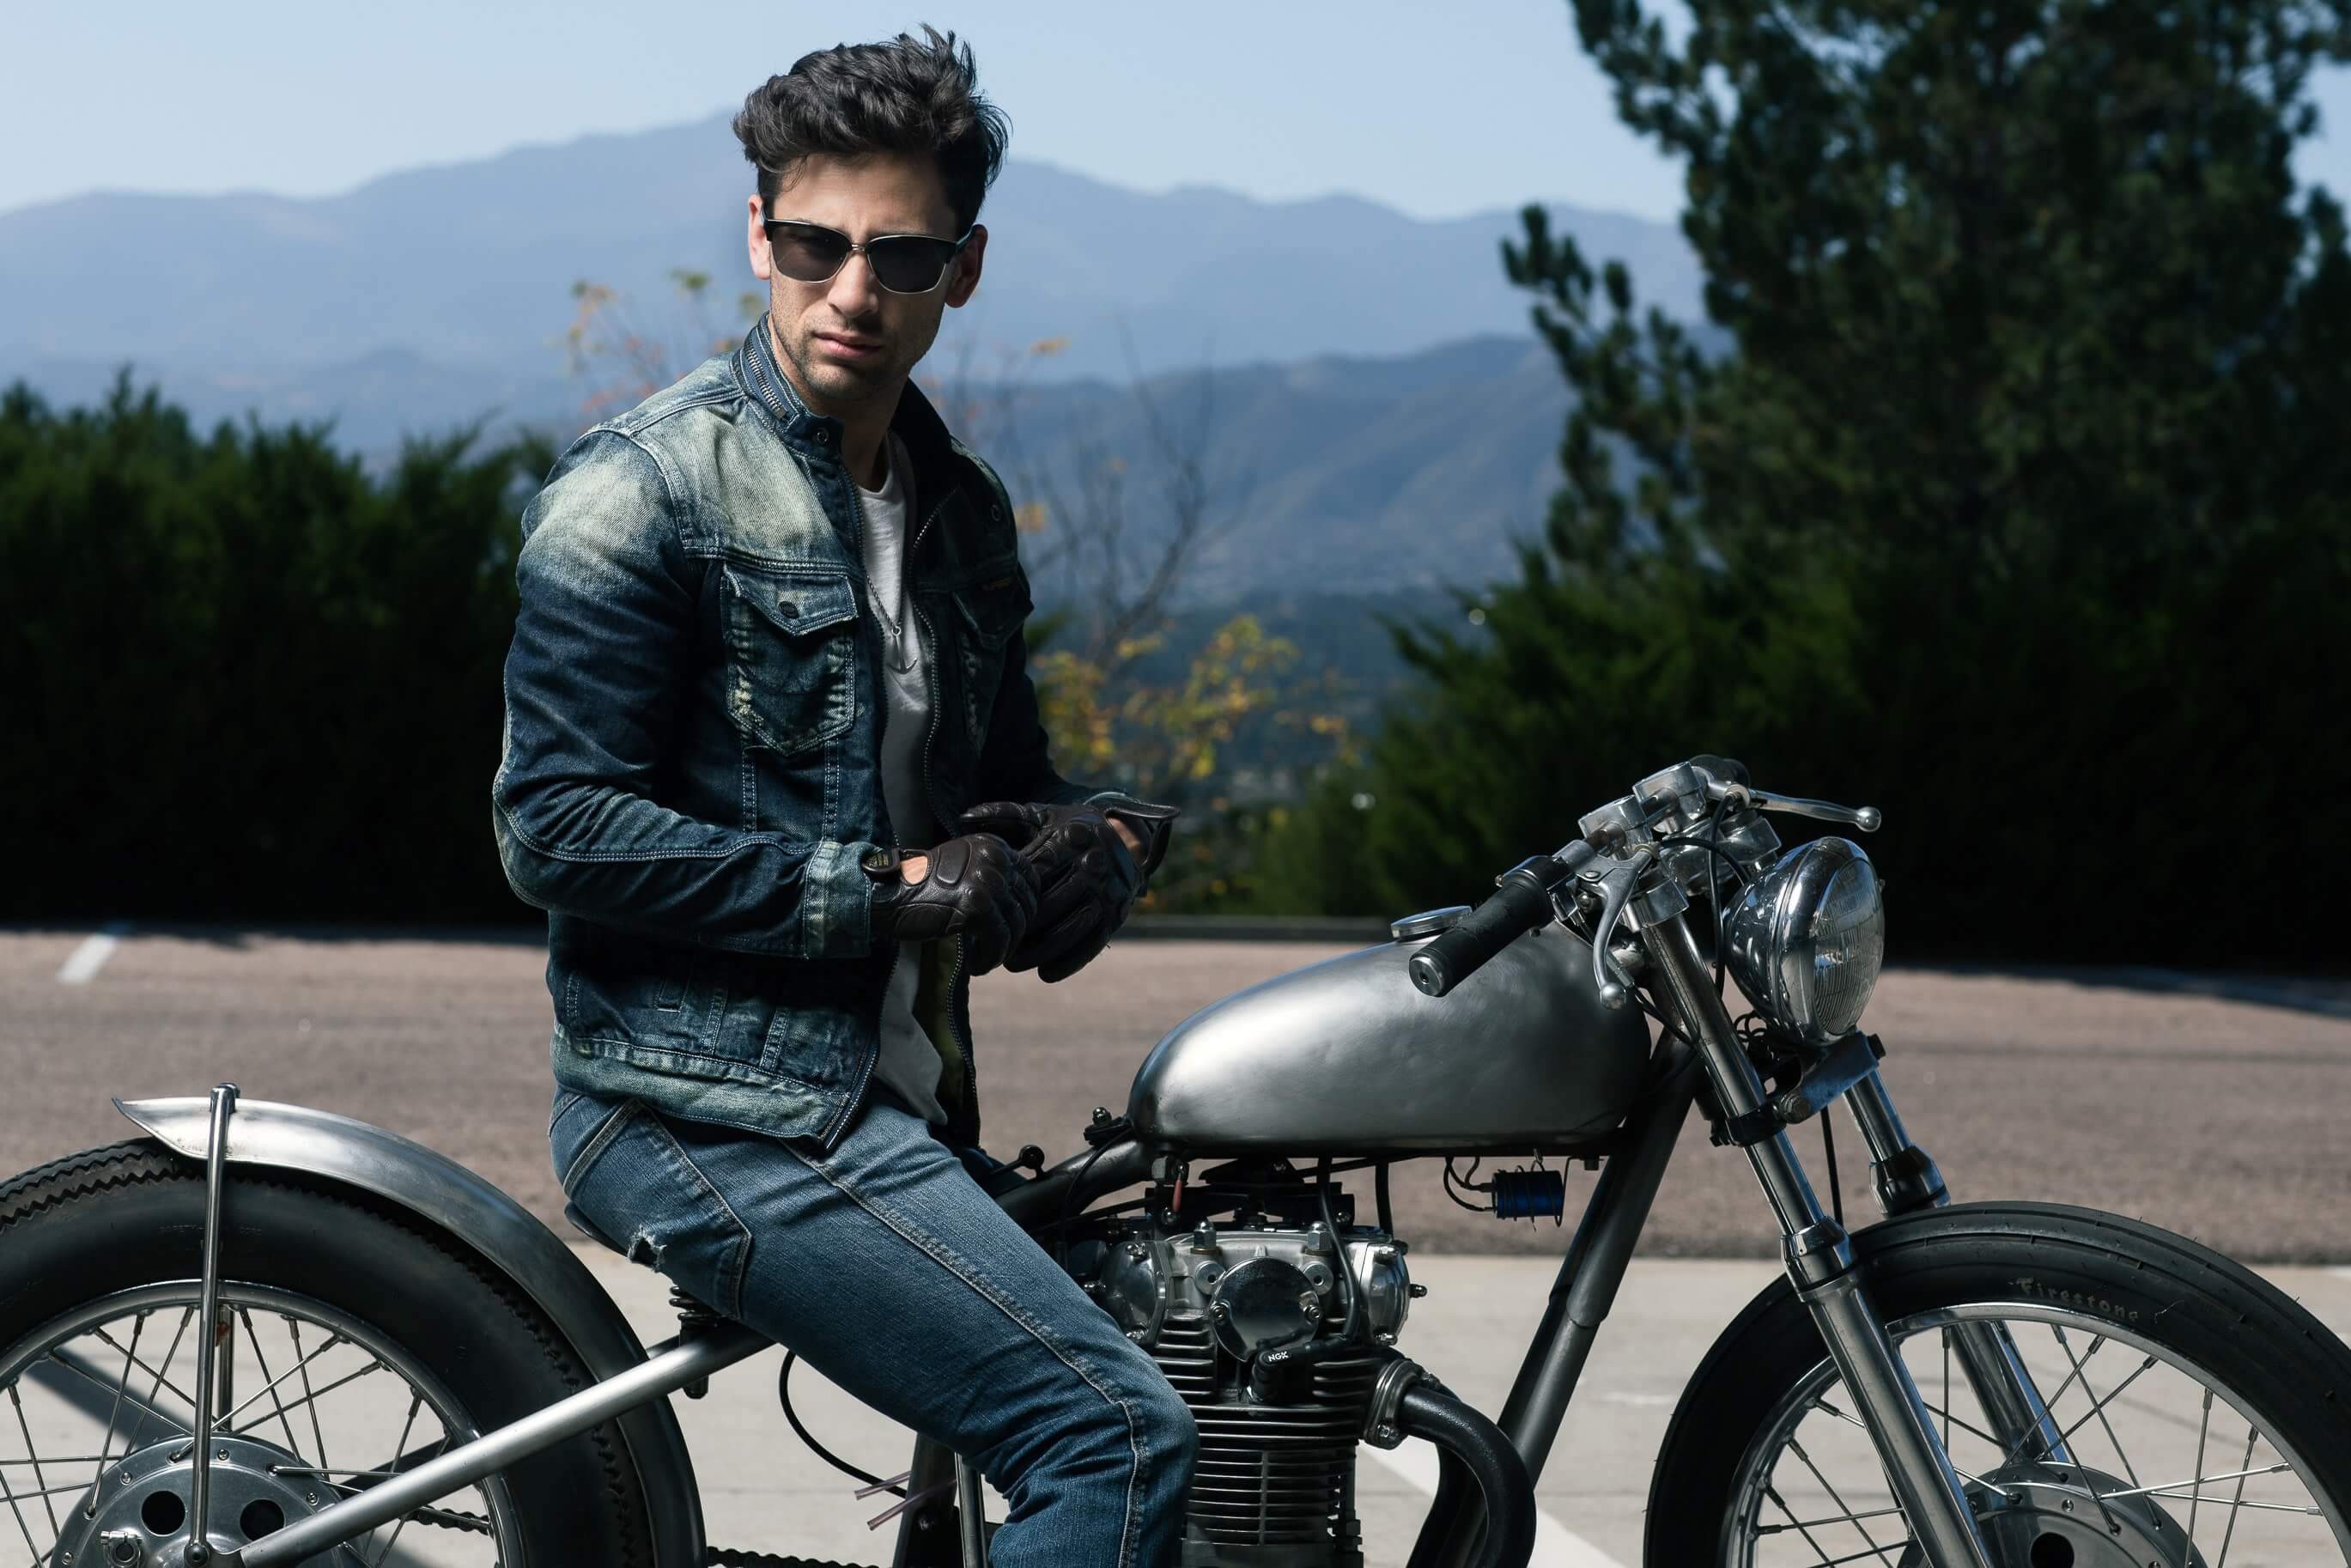 An in-depth review of the best motorcycle sunglasses available in 2019.